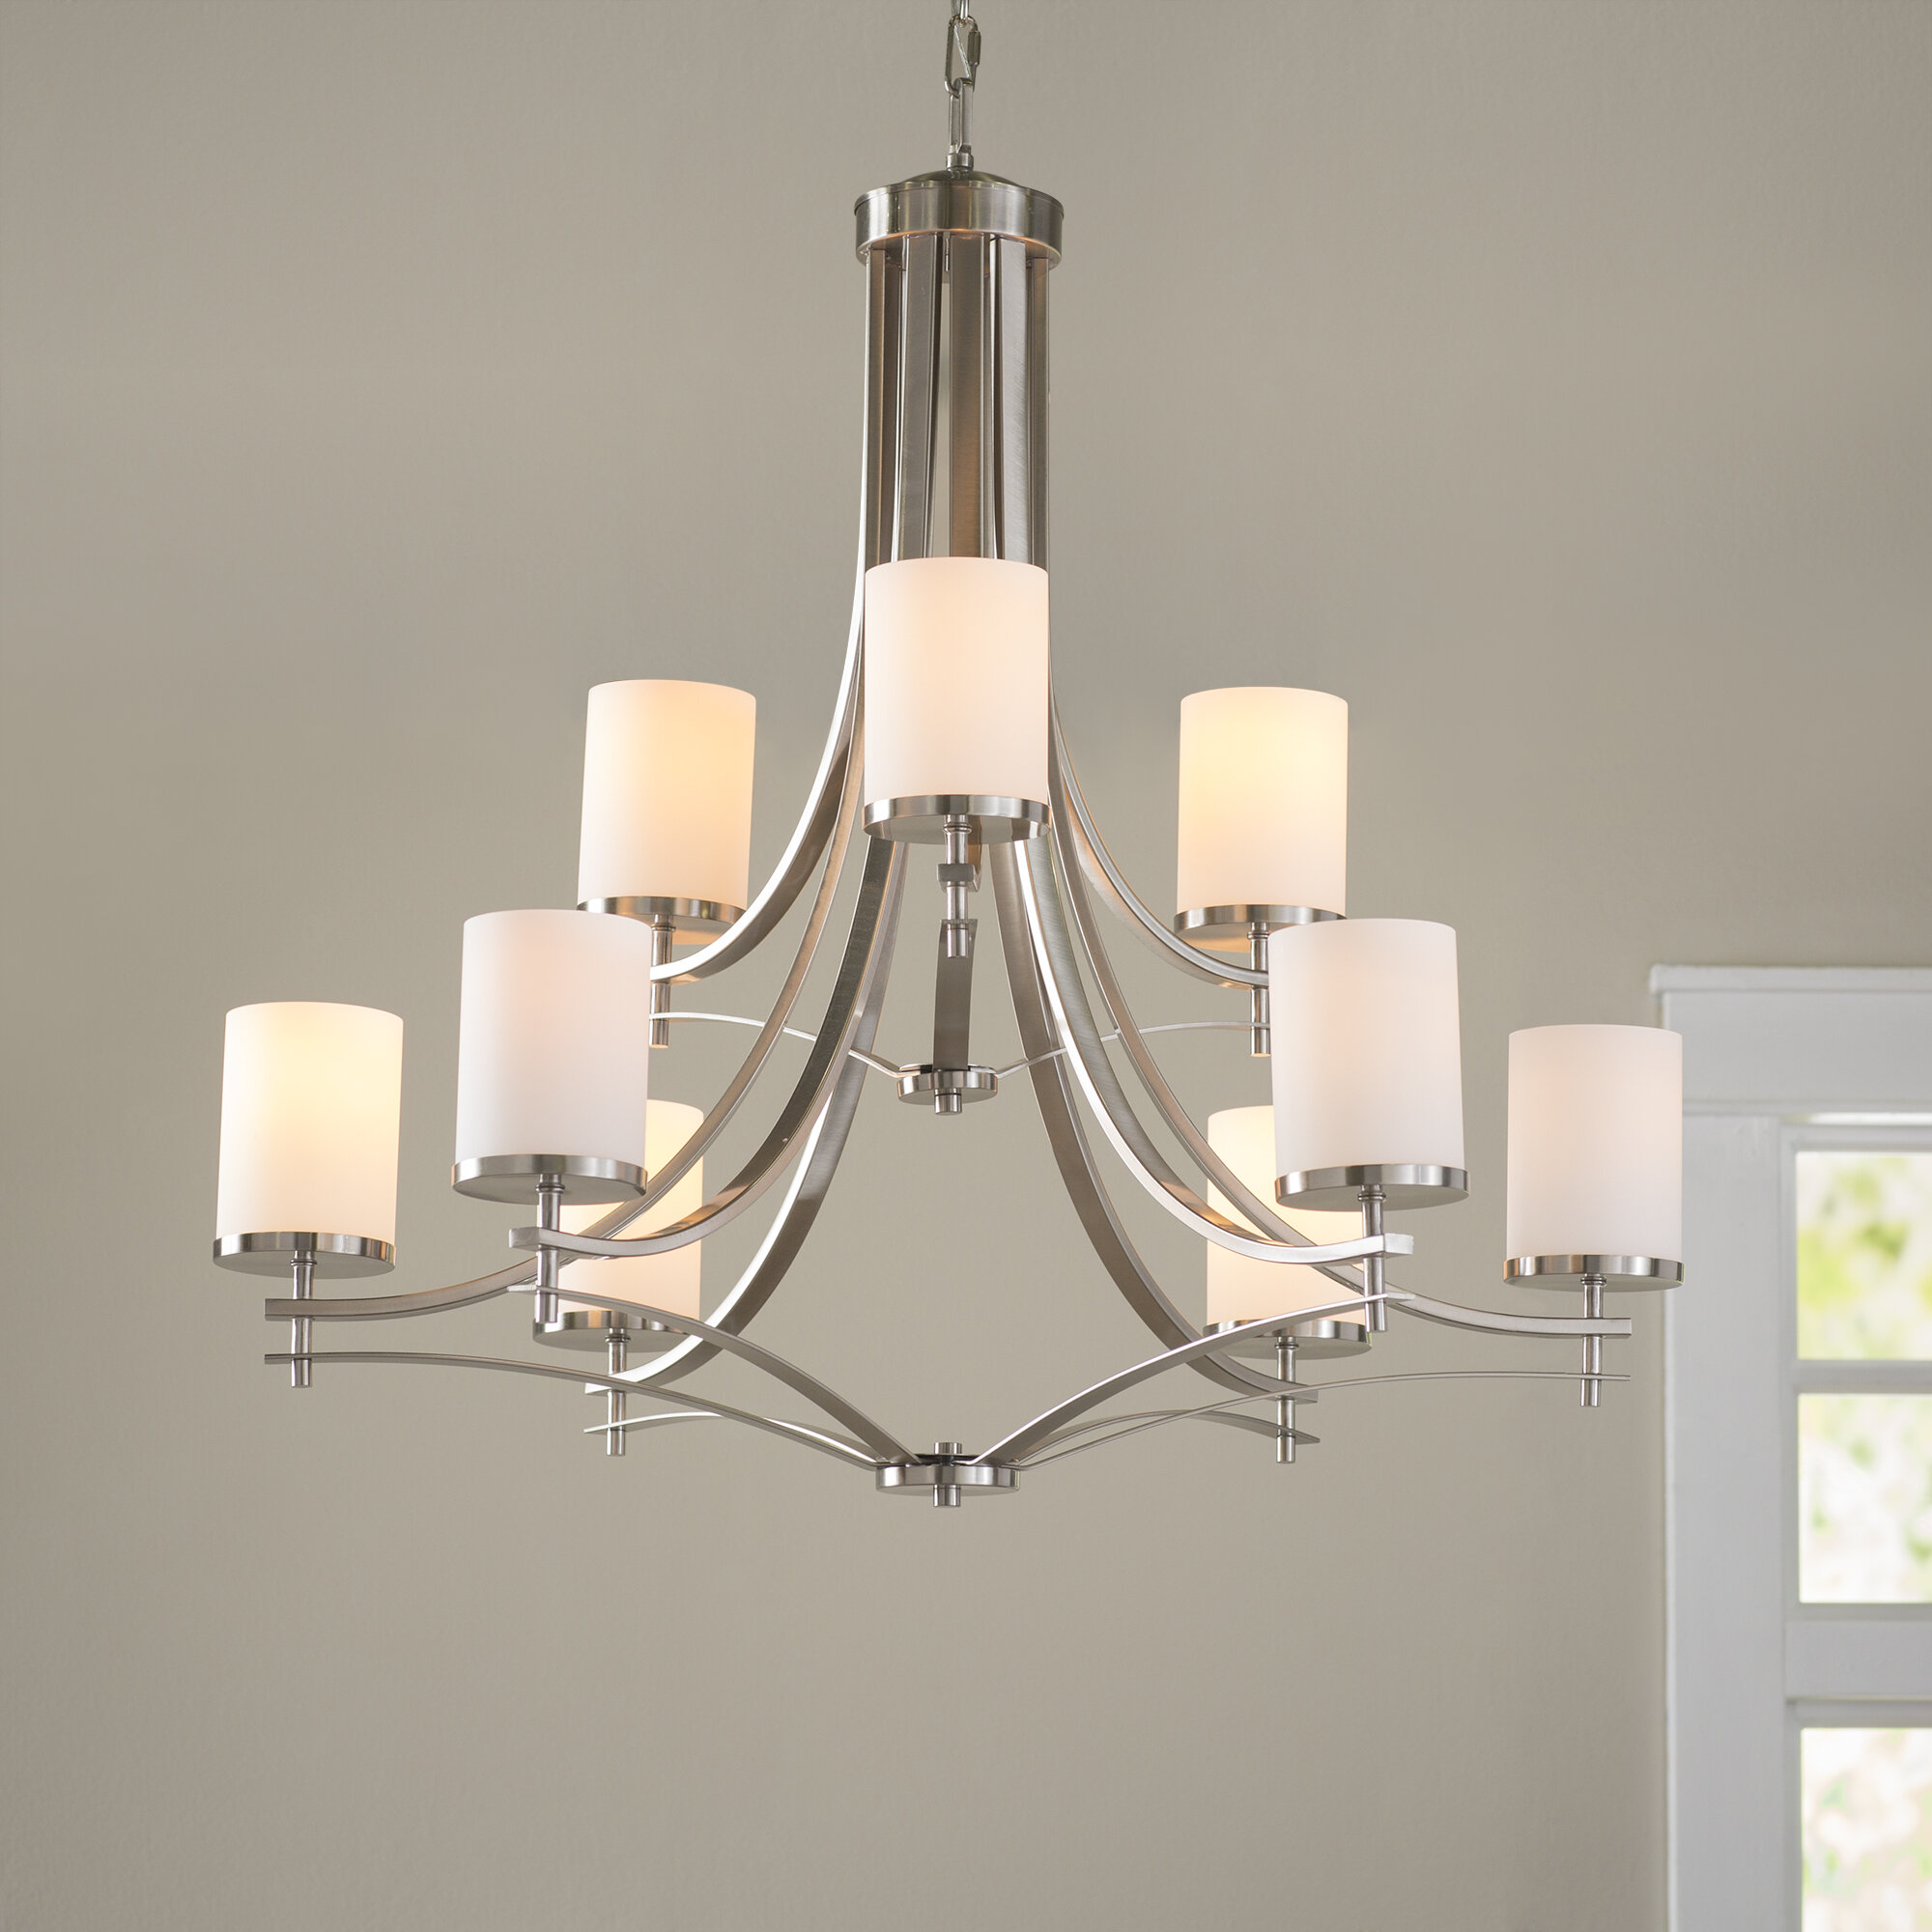 pelle chandelier by product bubble cover creamleather cord architonic b en tall lighting x satinbrass general from